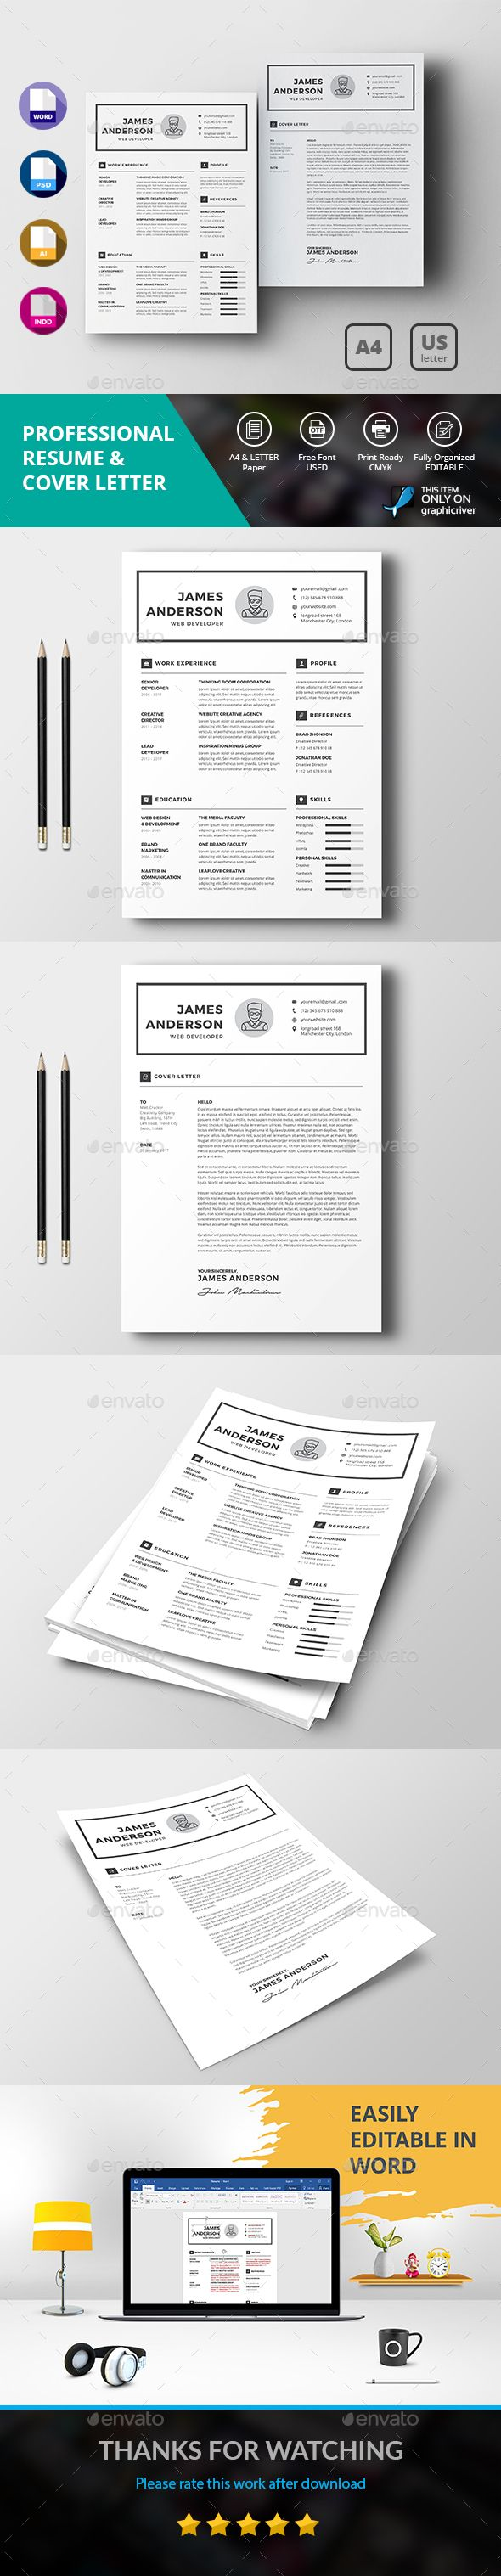 professional resume  u0026 cover letter template psd  vector eps  indesign indd  ai illustrator  ms